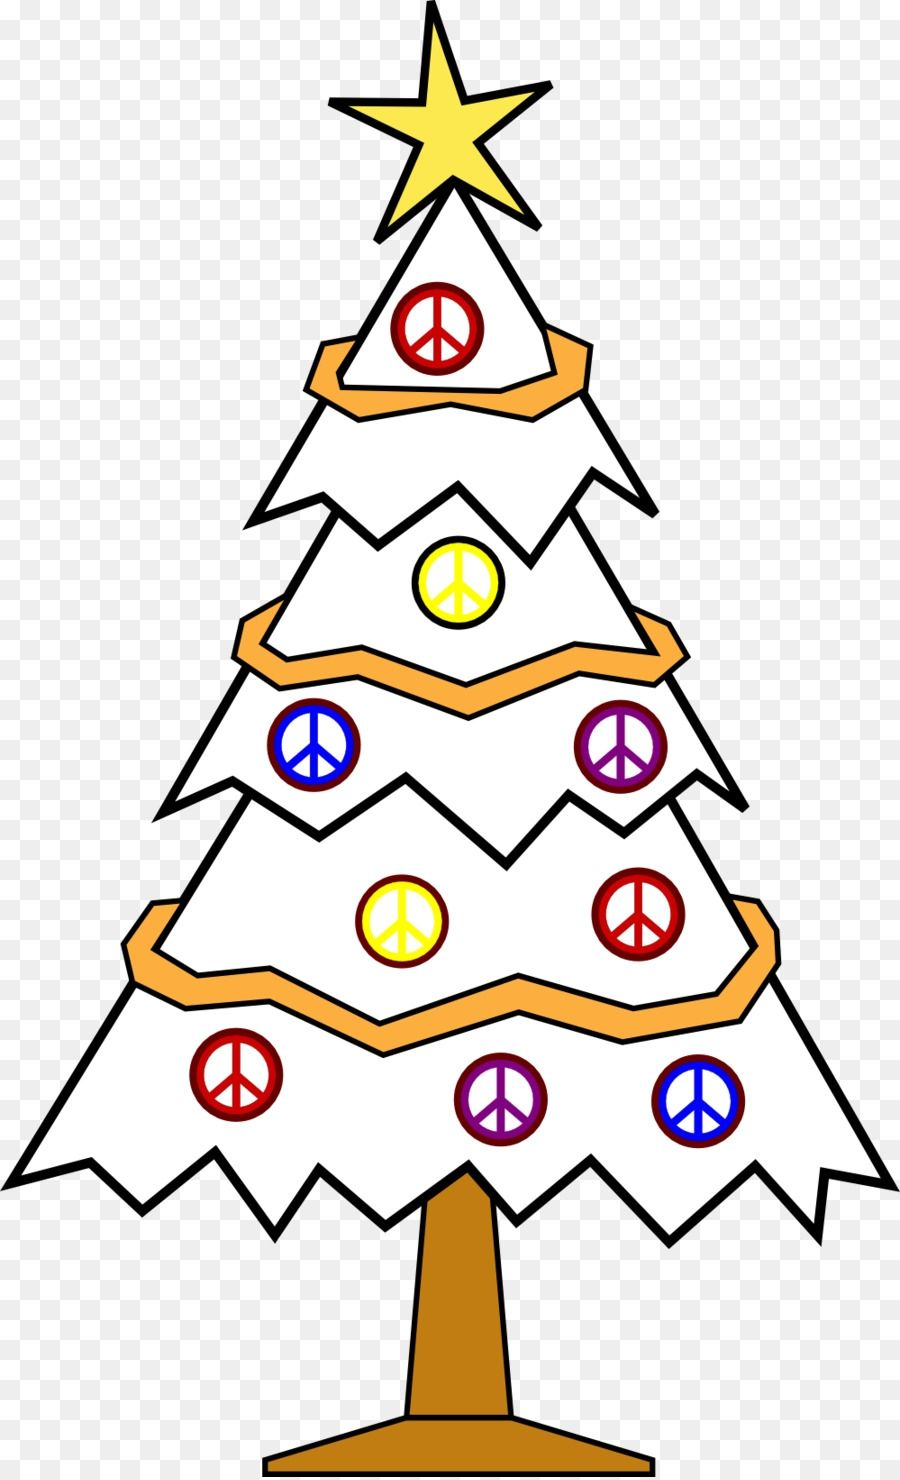 Black And White Christmas Clipart Ideas Christmas Clipart Elf Patterns Colorful Christmas Tree